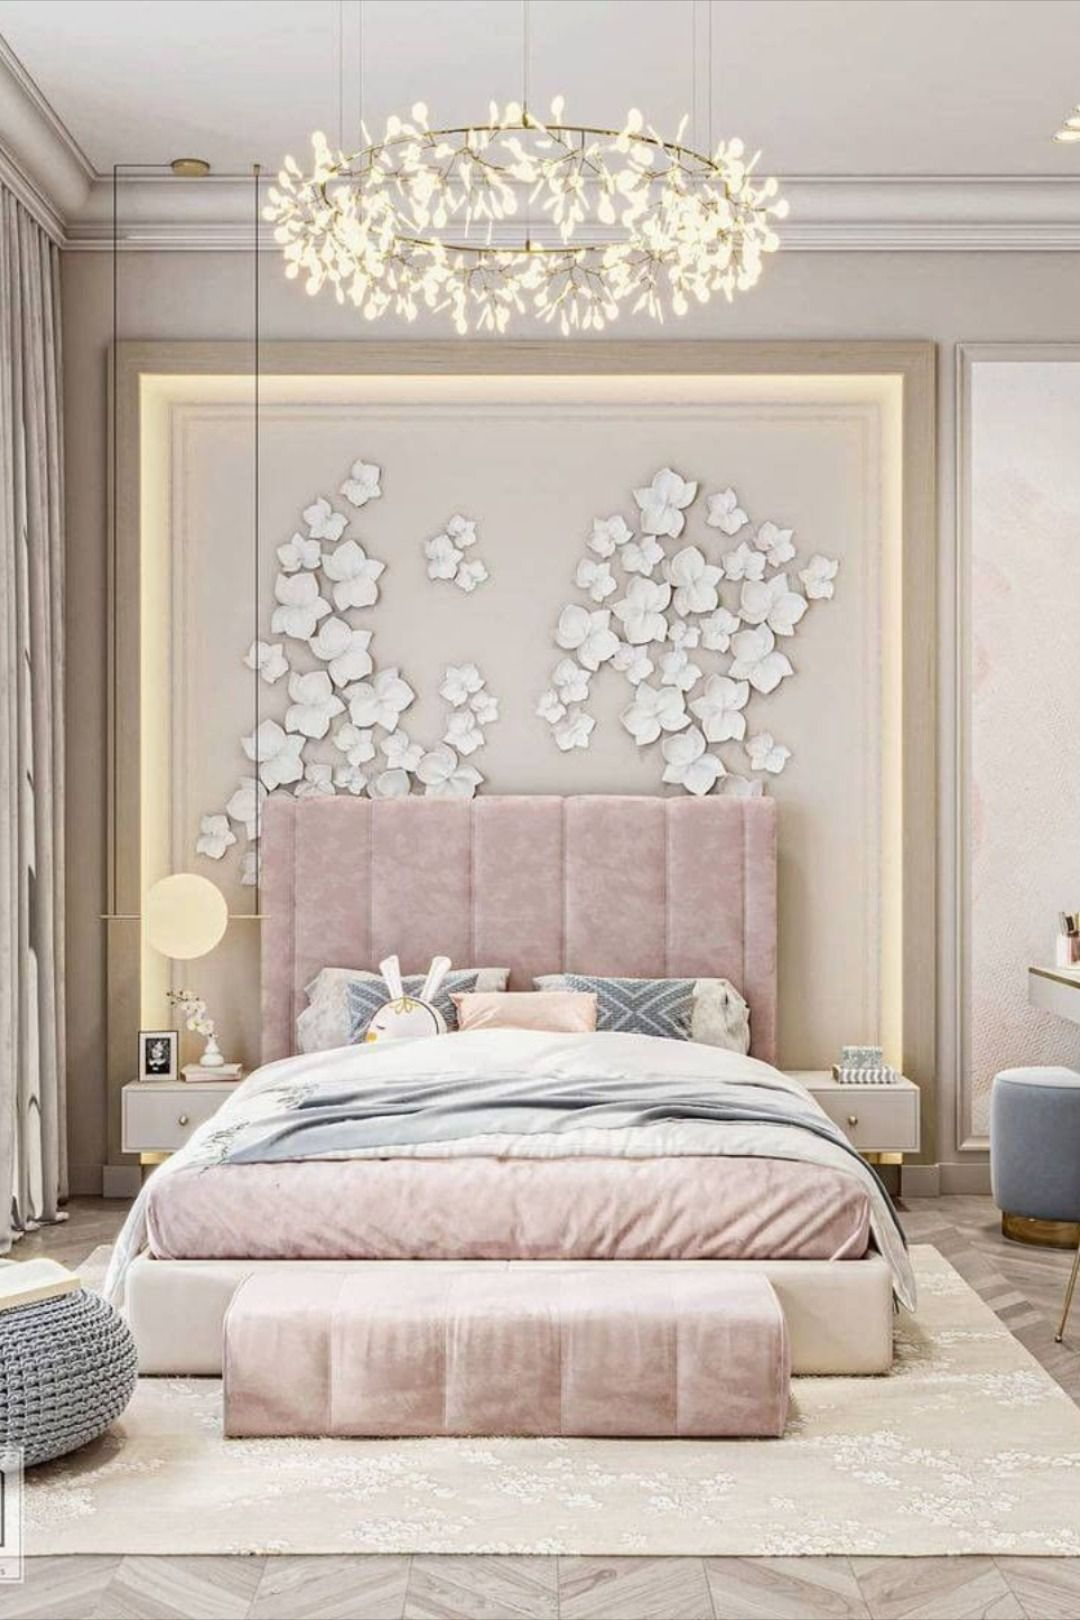 Luxury girl room project design by Darwish Designs in 12 ...